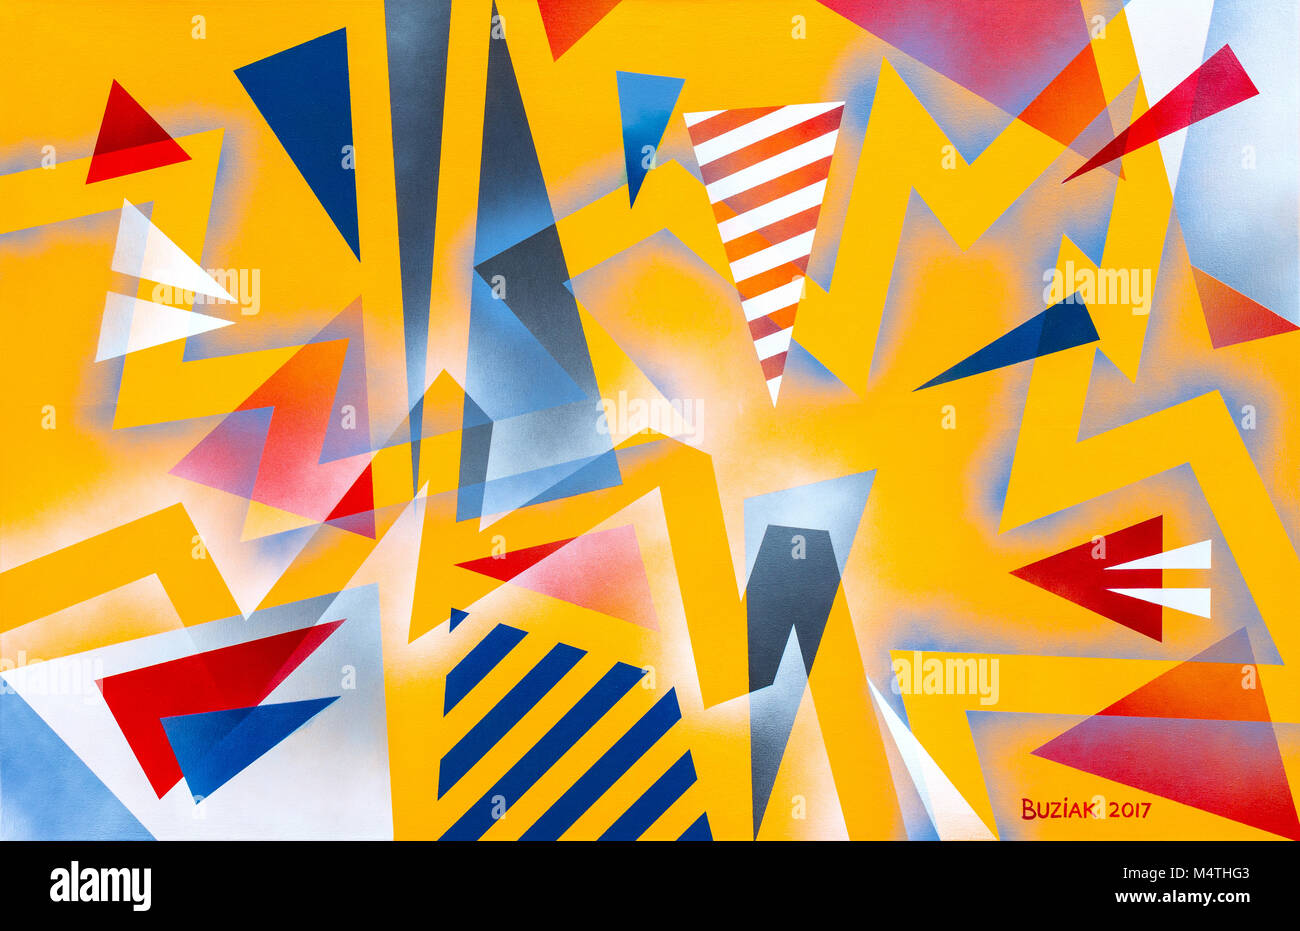 Abstract artwork by Ed Buziak - France. - Stock Image